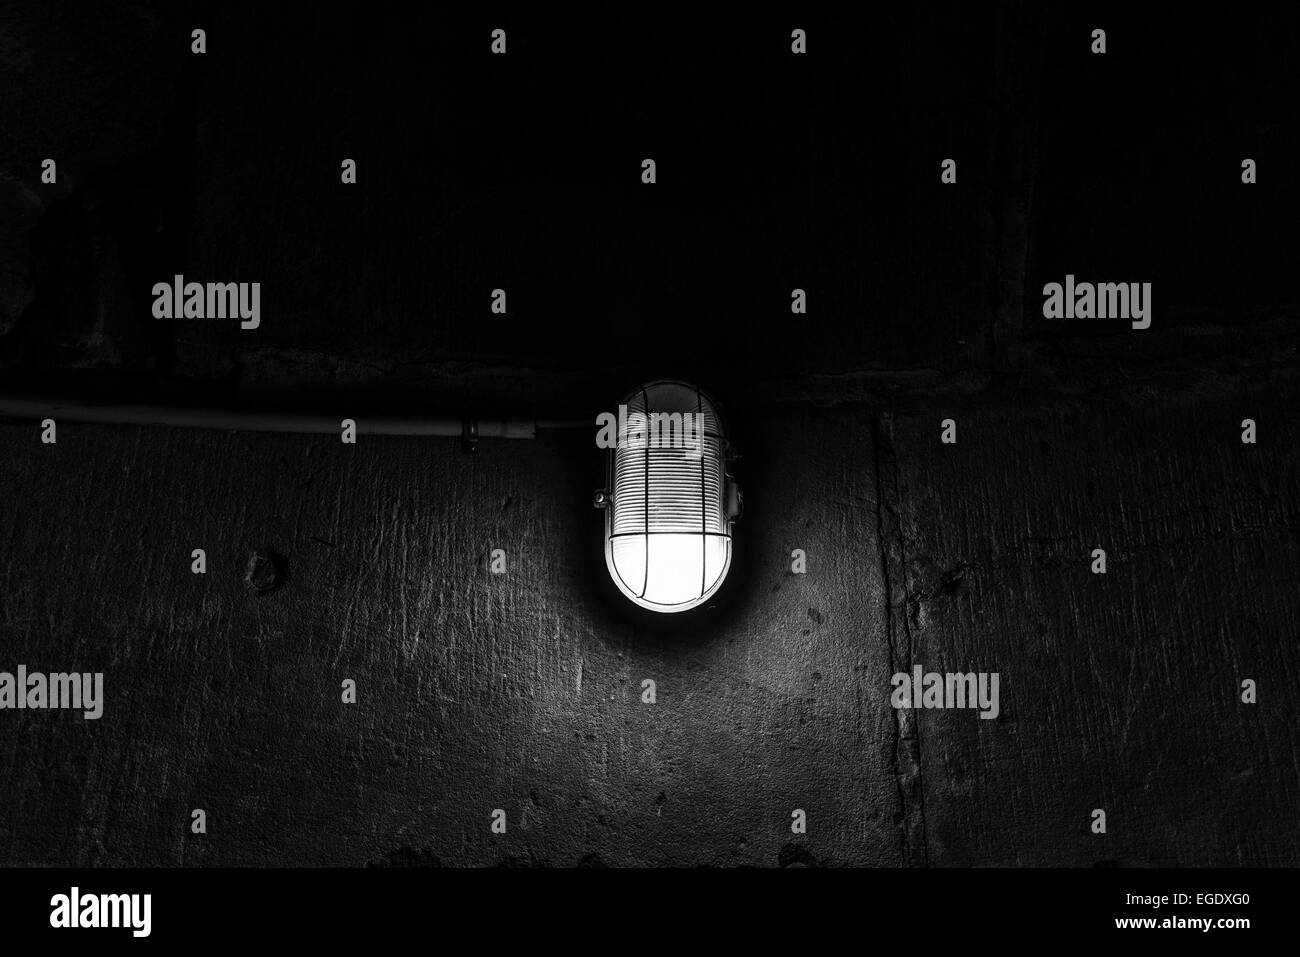 a lamp in the darkness - Stock Image